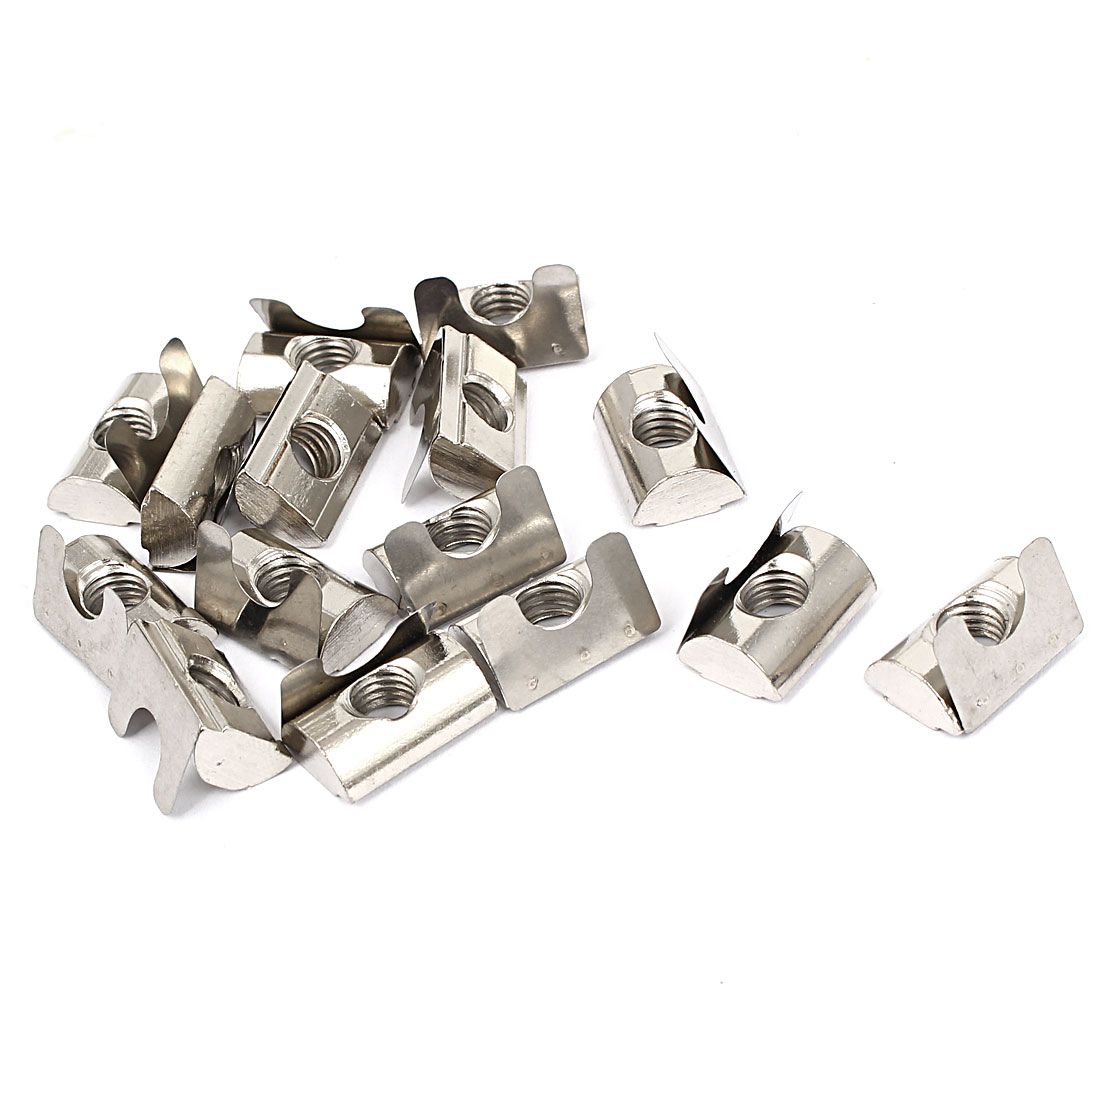 M8 Metal Spring Nuts T-Slot Frame Profile Extrusion 20mm Length 15pcs